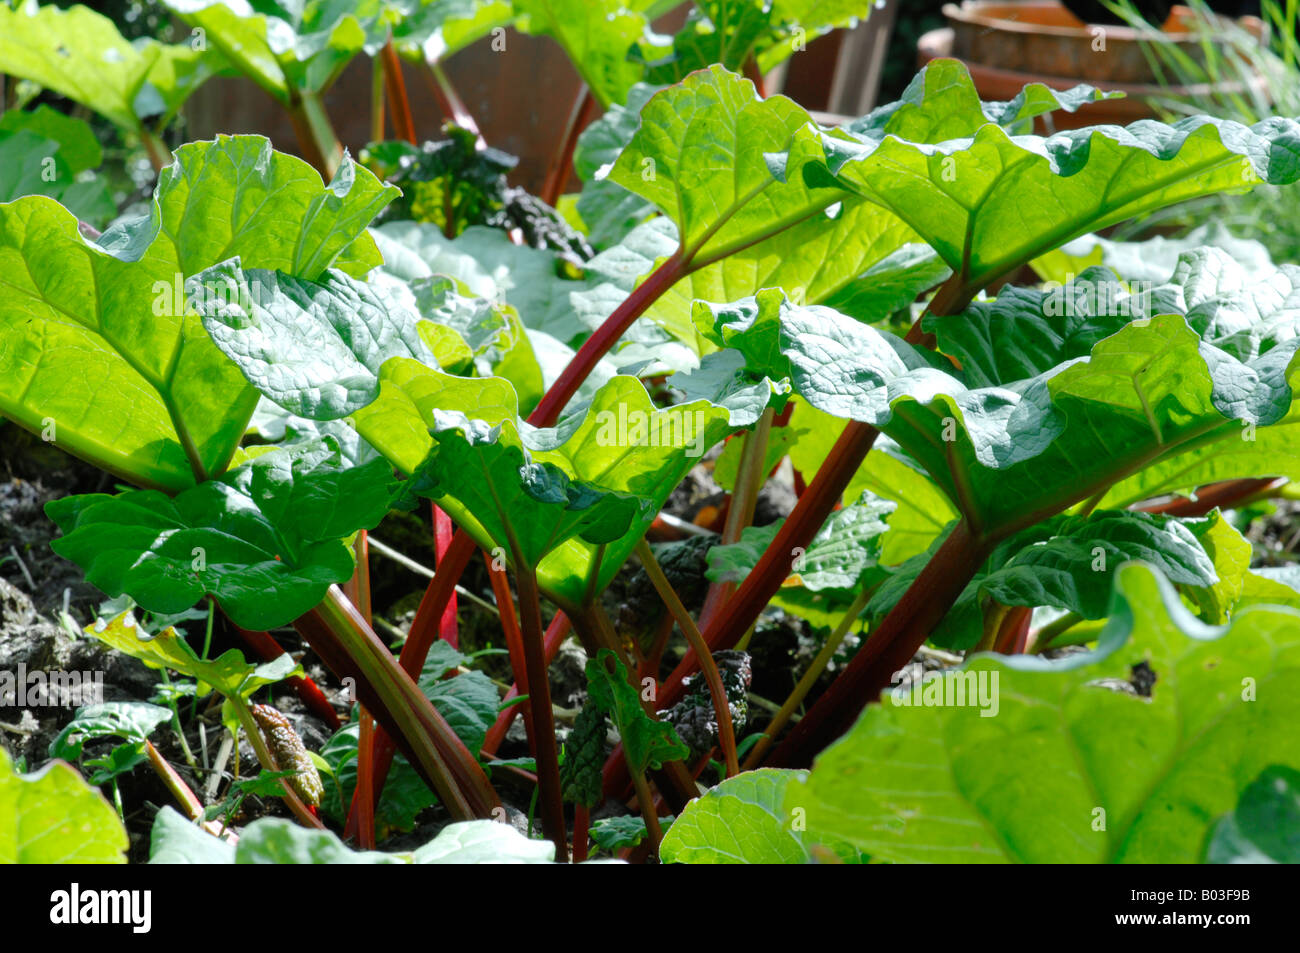 Rhubarb patch in spring - Stock Image